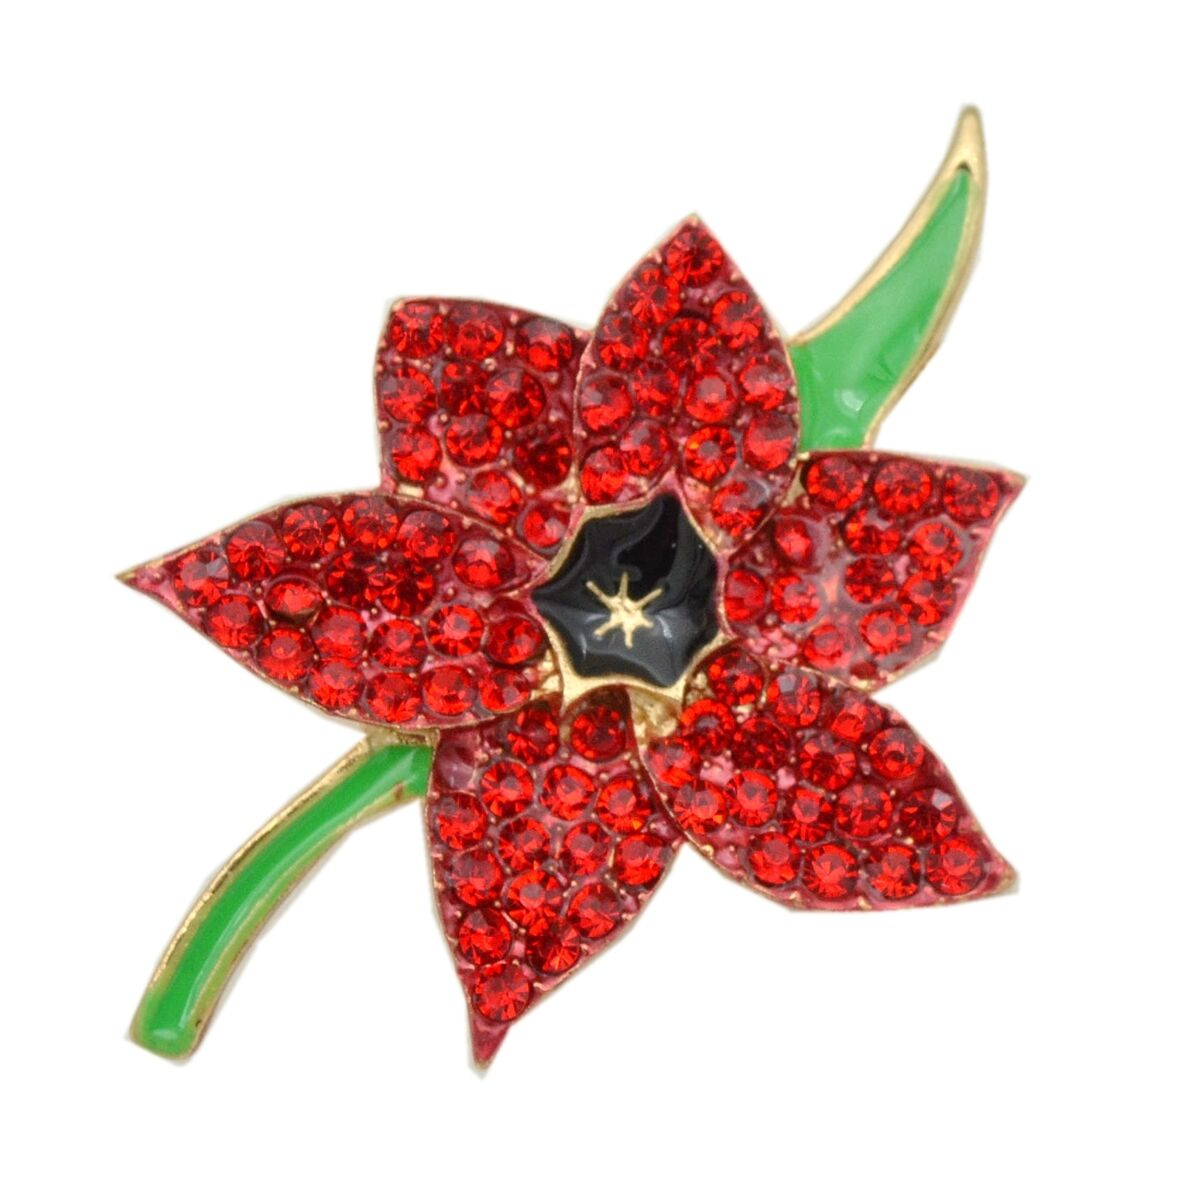 Shiny Red Poppy Flower Symbolic Brooch Coat Poppies Remembrance Day